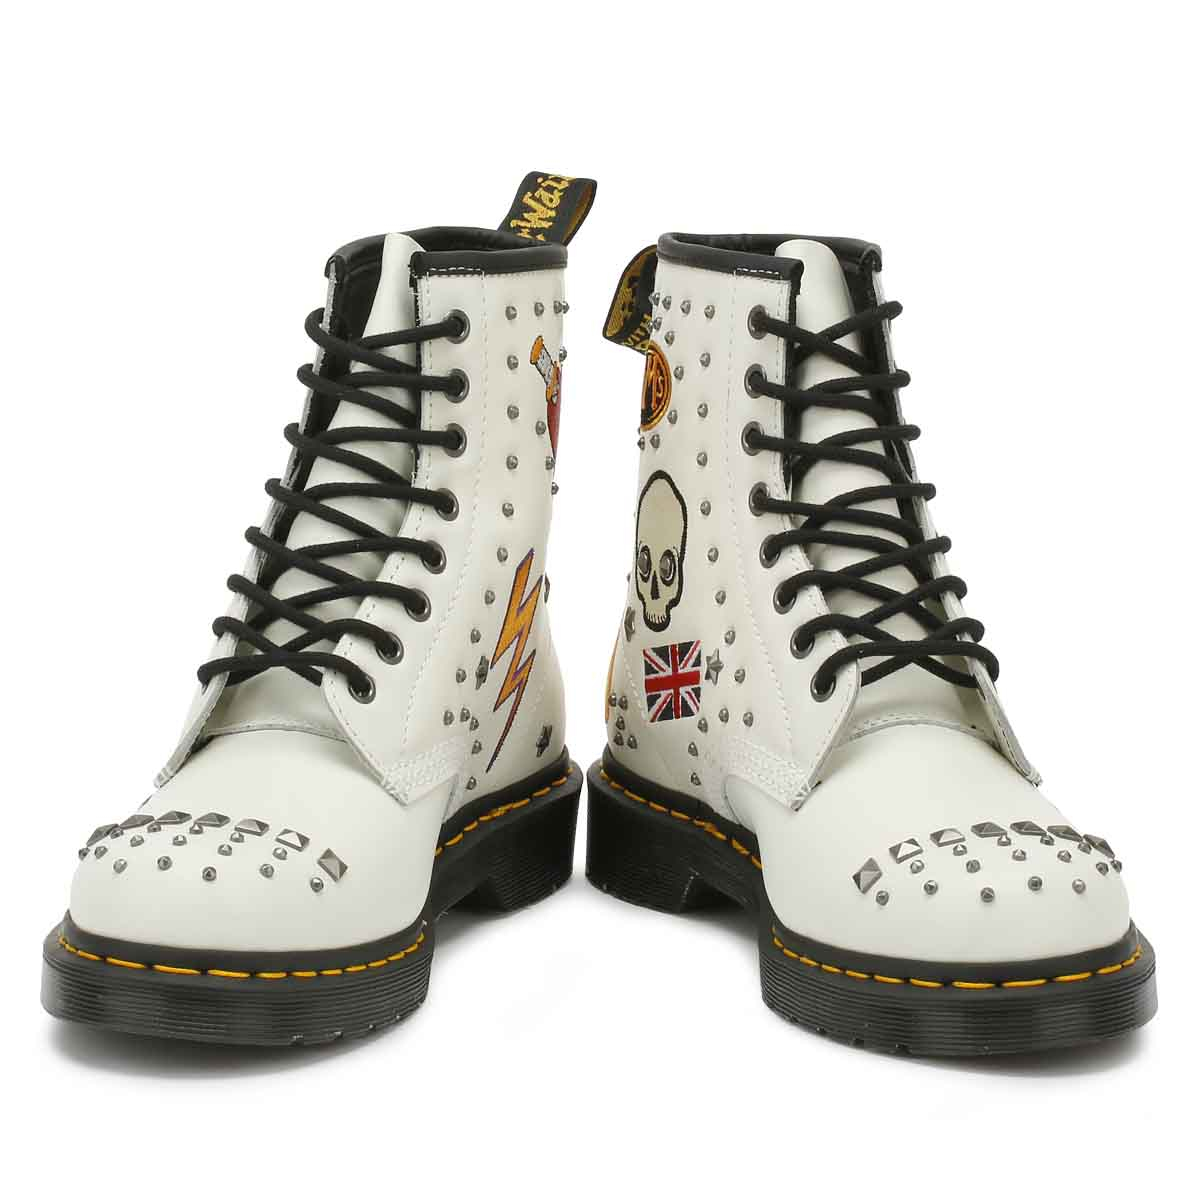 Dr. Martens Weiß 1460 Up Rockabilly Unisex Stiefel Lace Up 1460 Leder Ankle Schuhes 3adac4